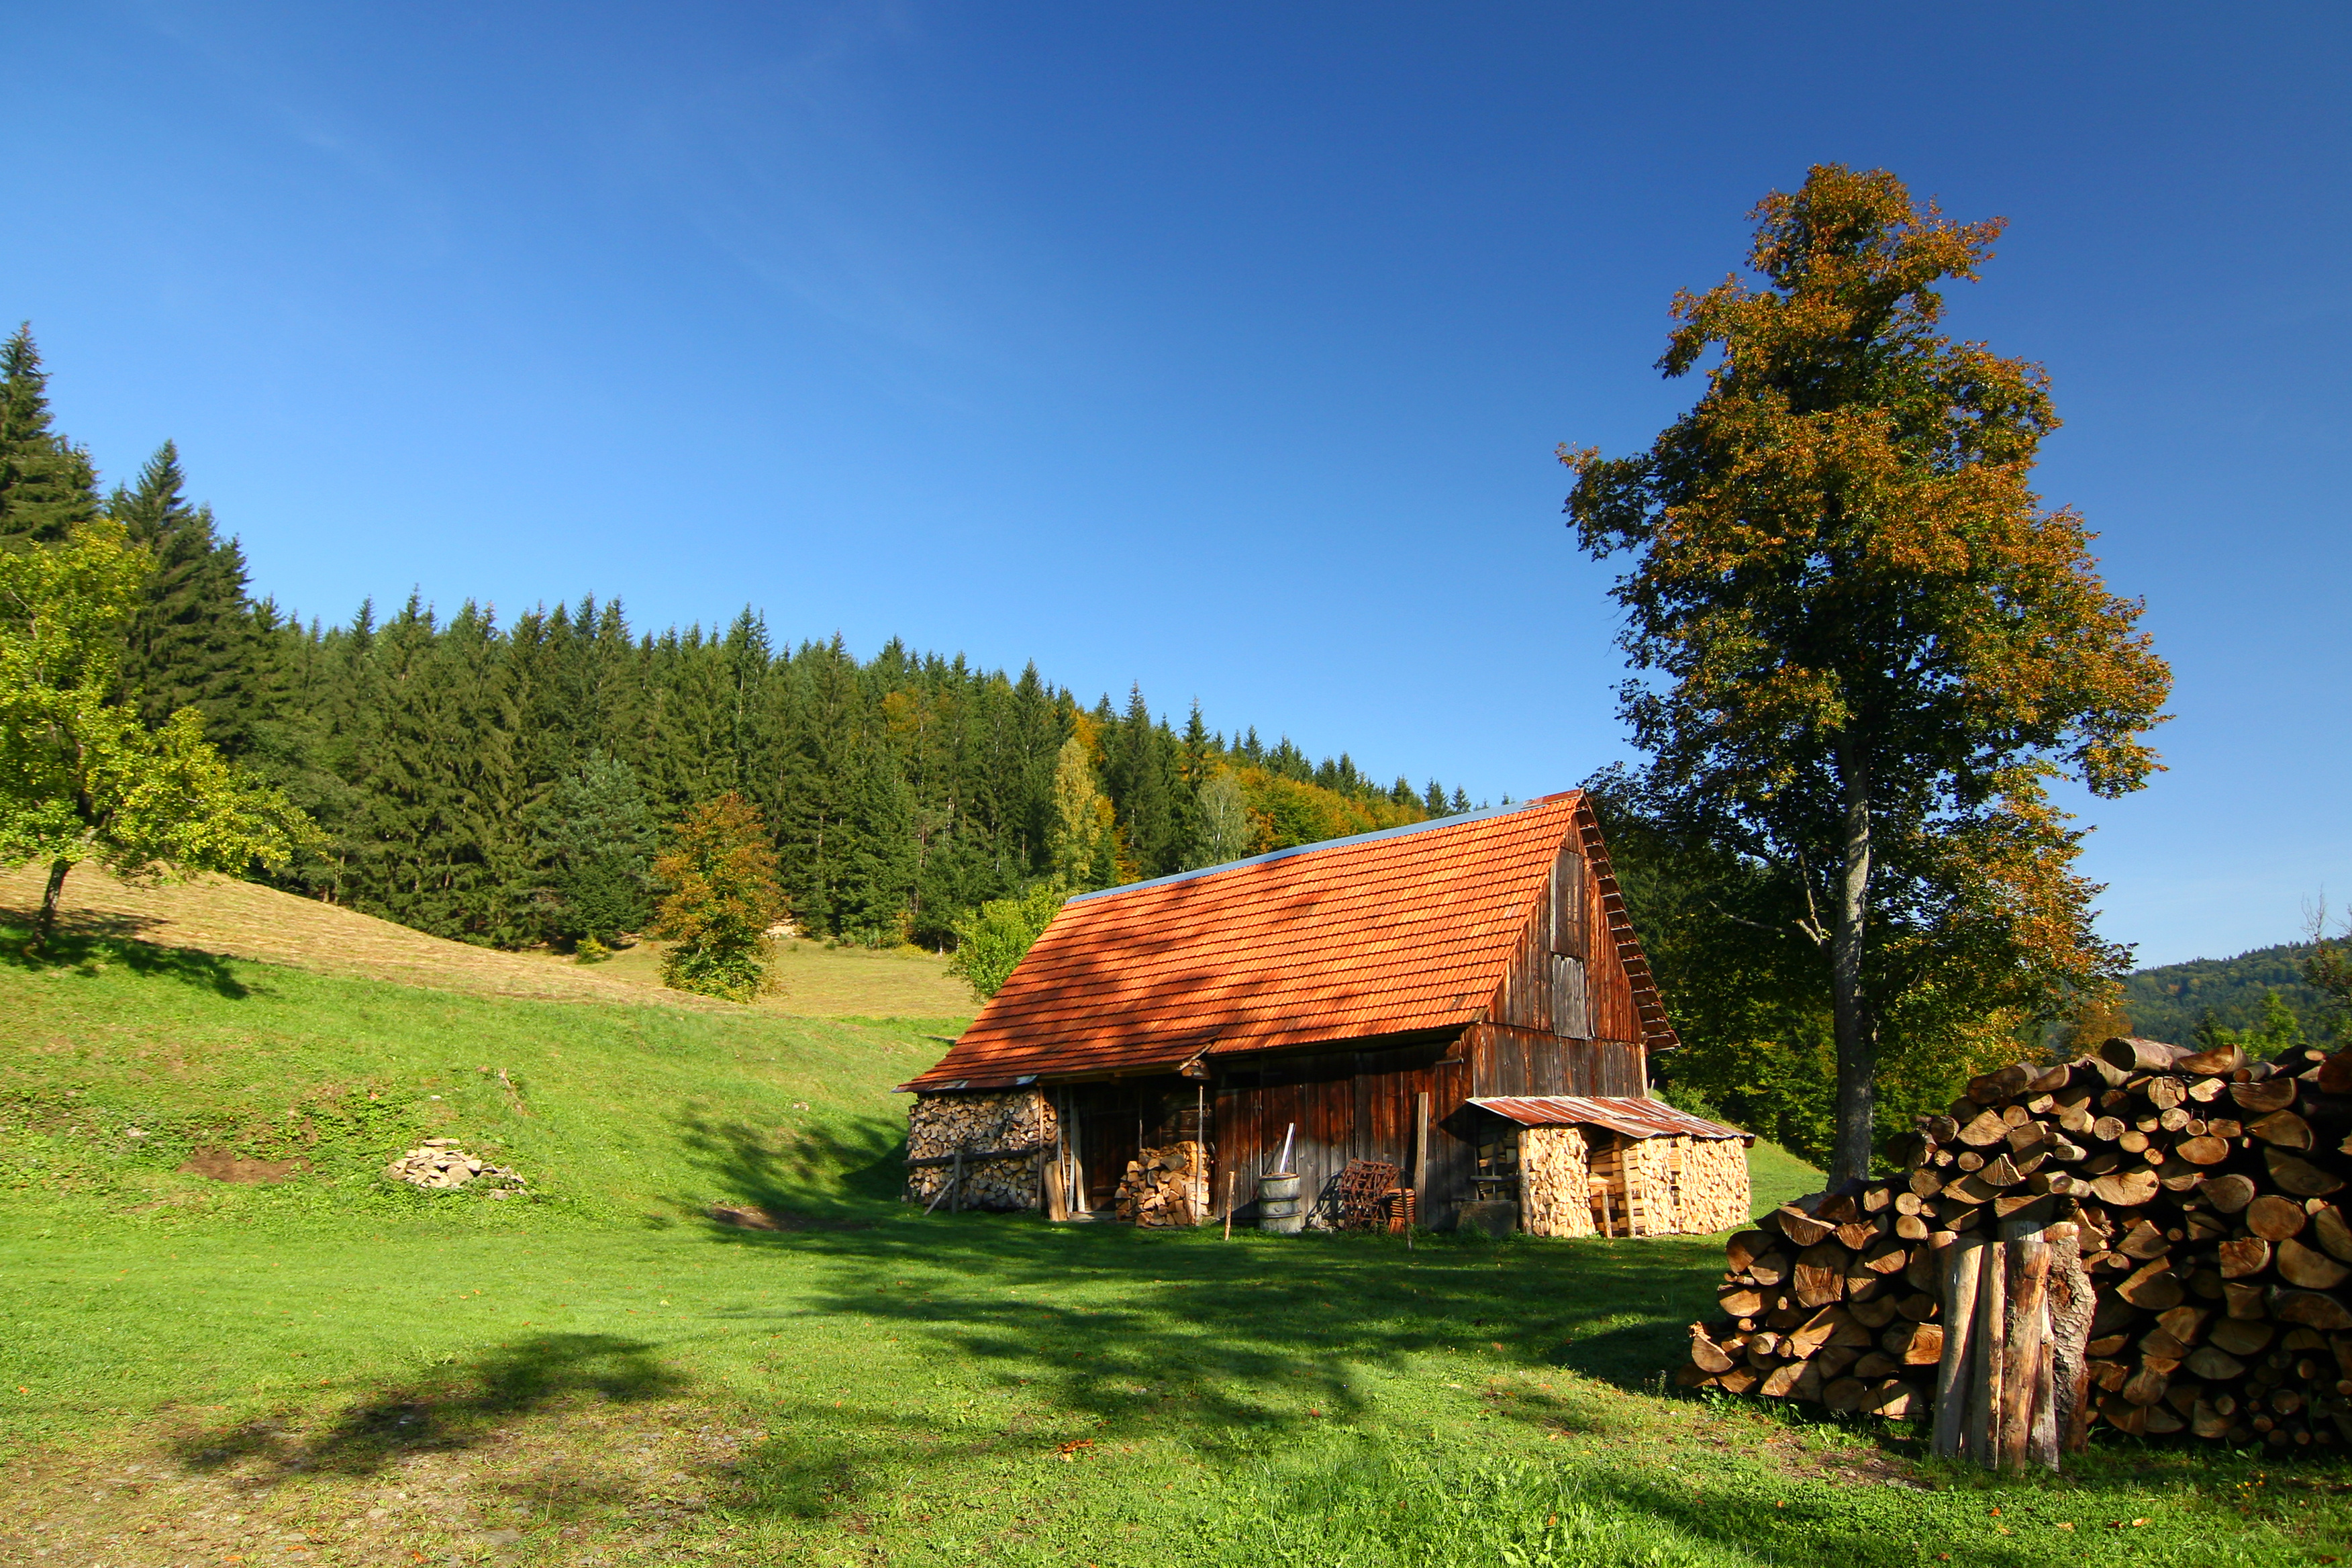 weekend house and beautiful sunny morning